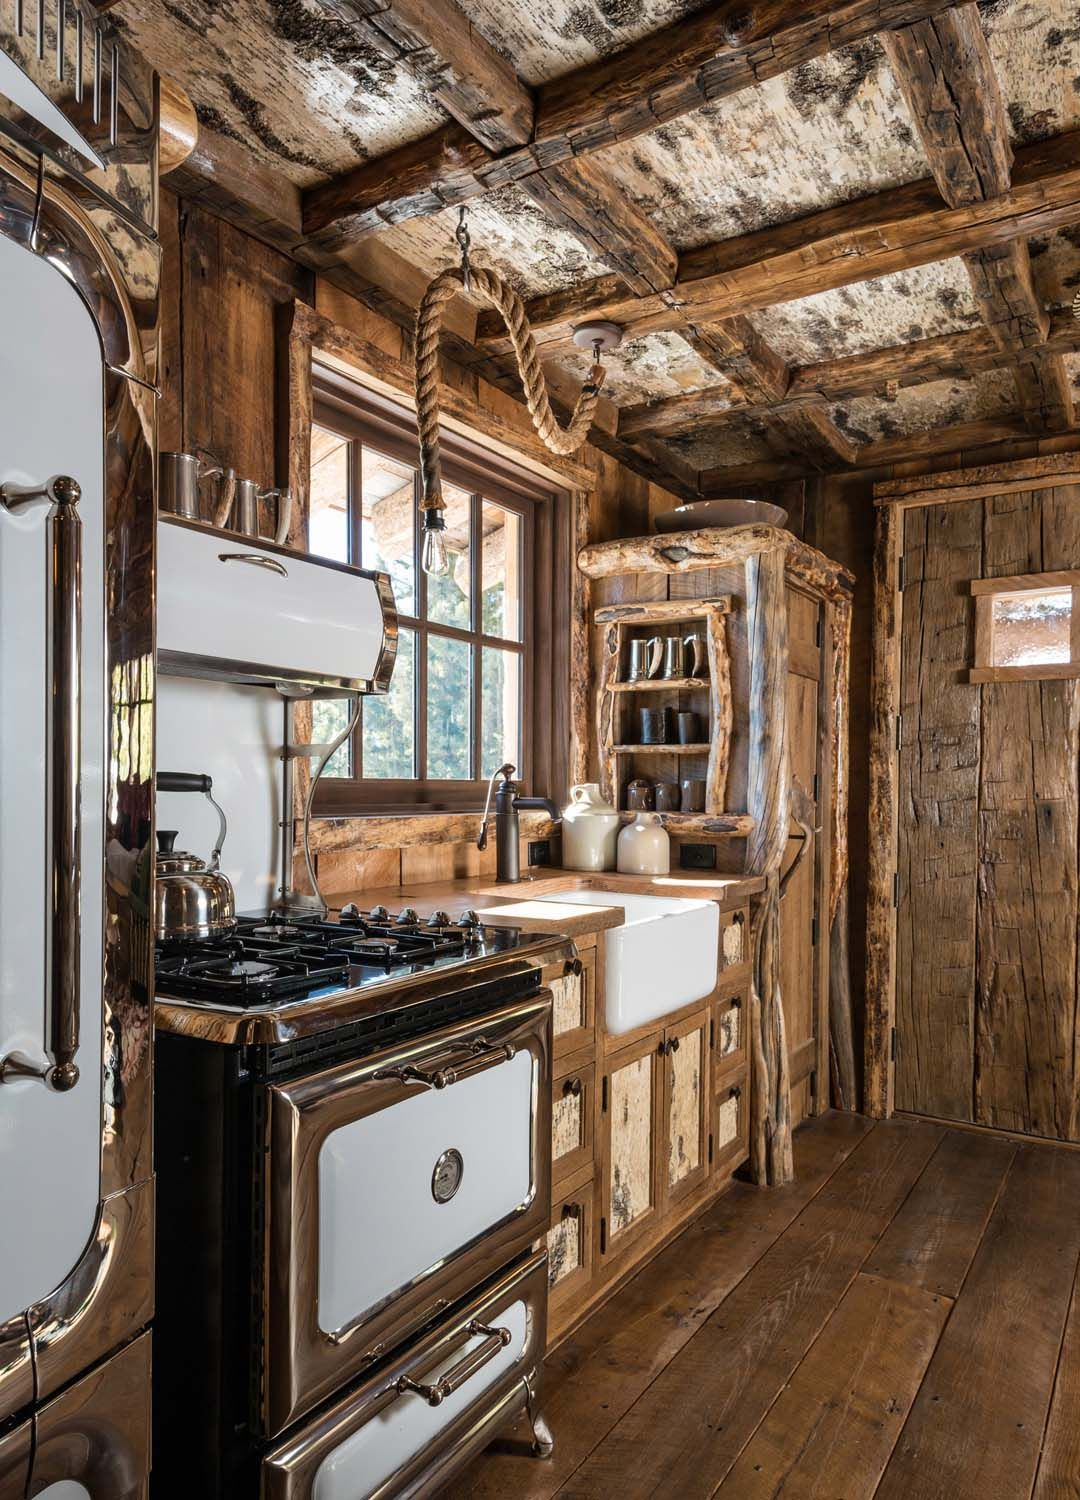 Kitchen Appliances On Credit 30 Heartland Classic Range In Rustic Country Kitchen Photo